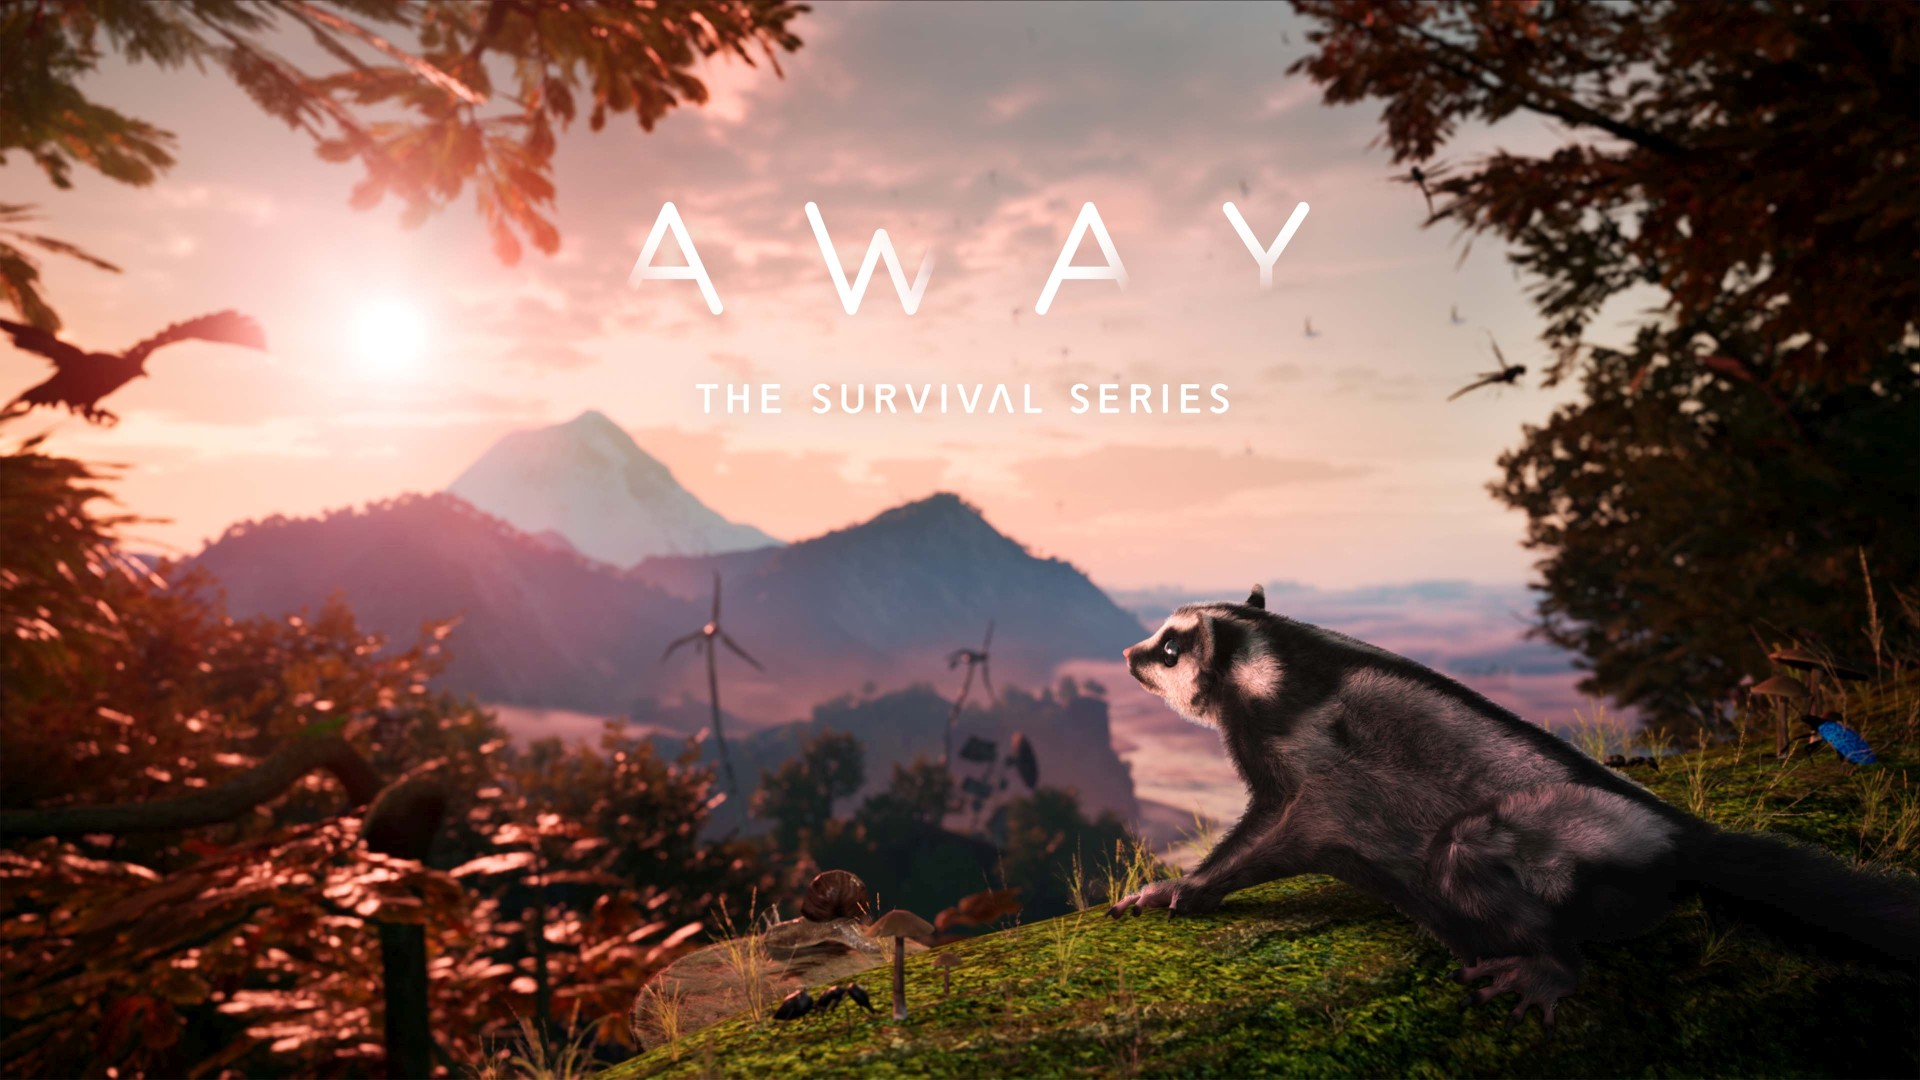 Sugar Glider Adventure Away: The Survival Series is Coming to Xbox in 2021